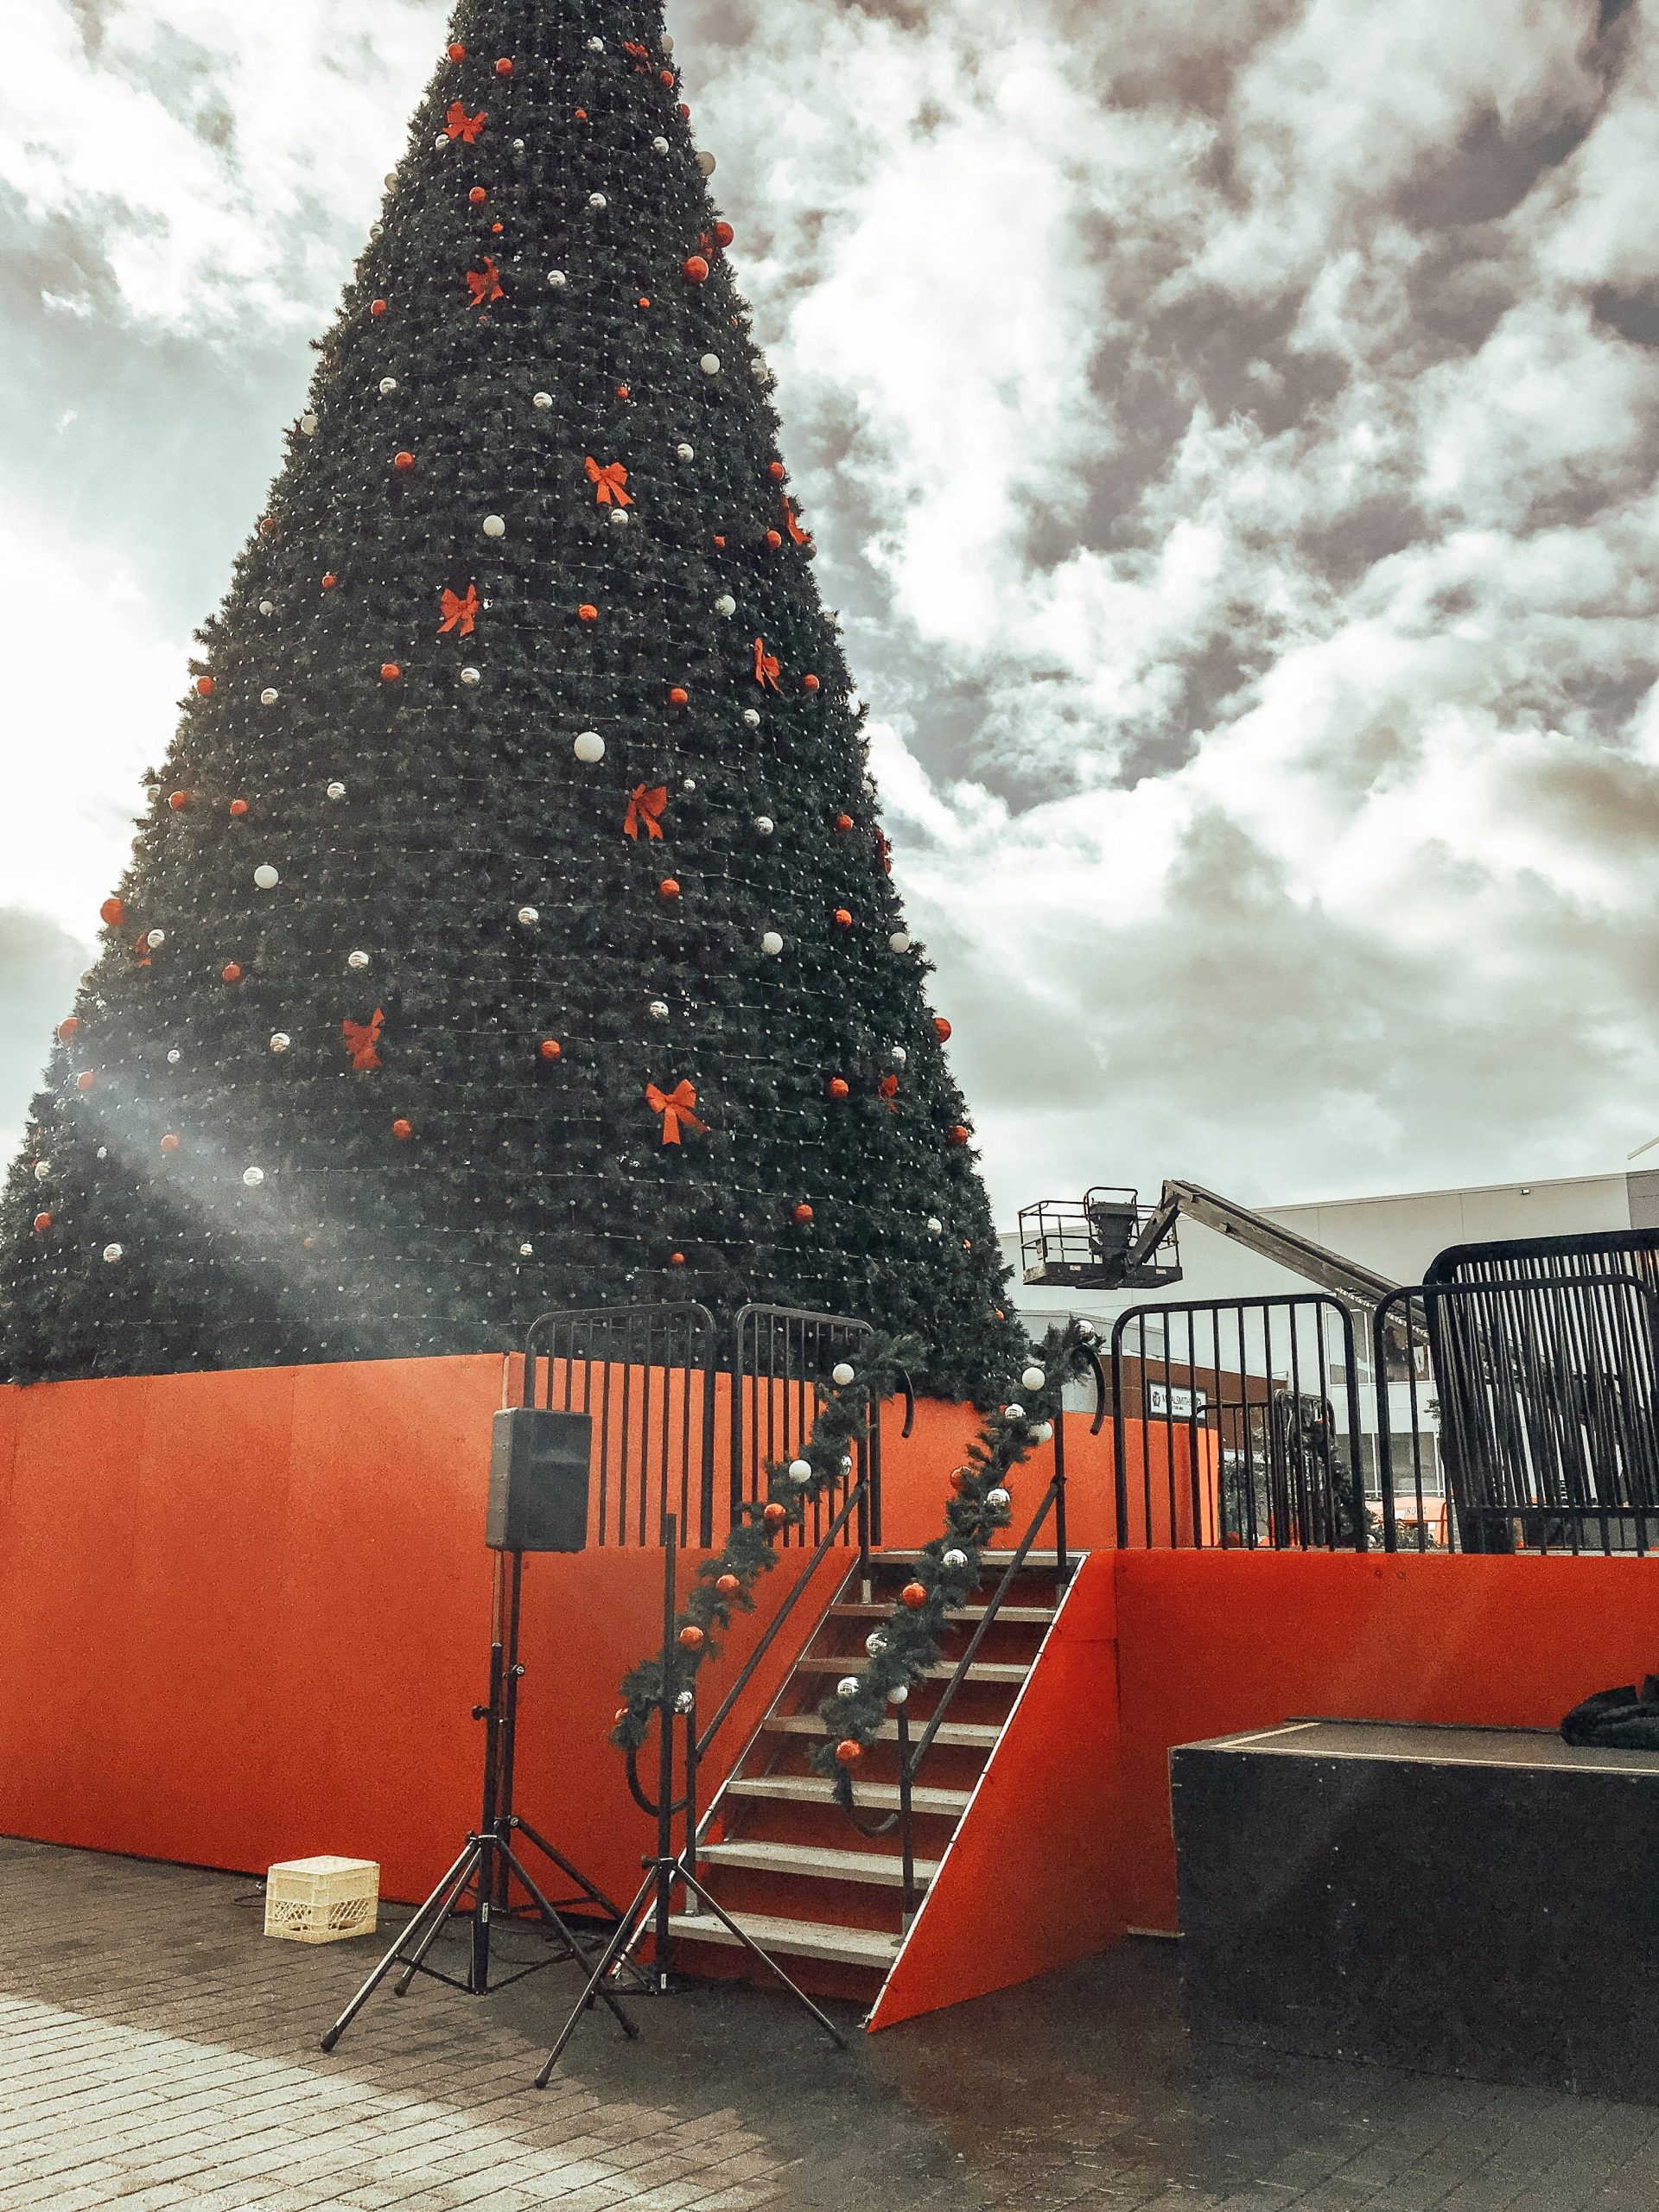 One of Canada's tallest Christmas trees is in Abbotsford!